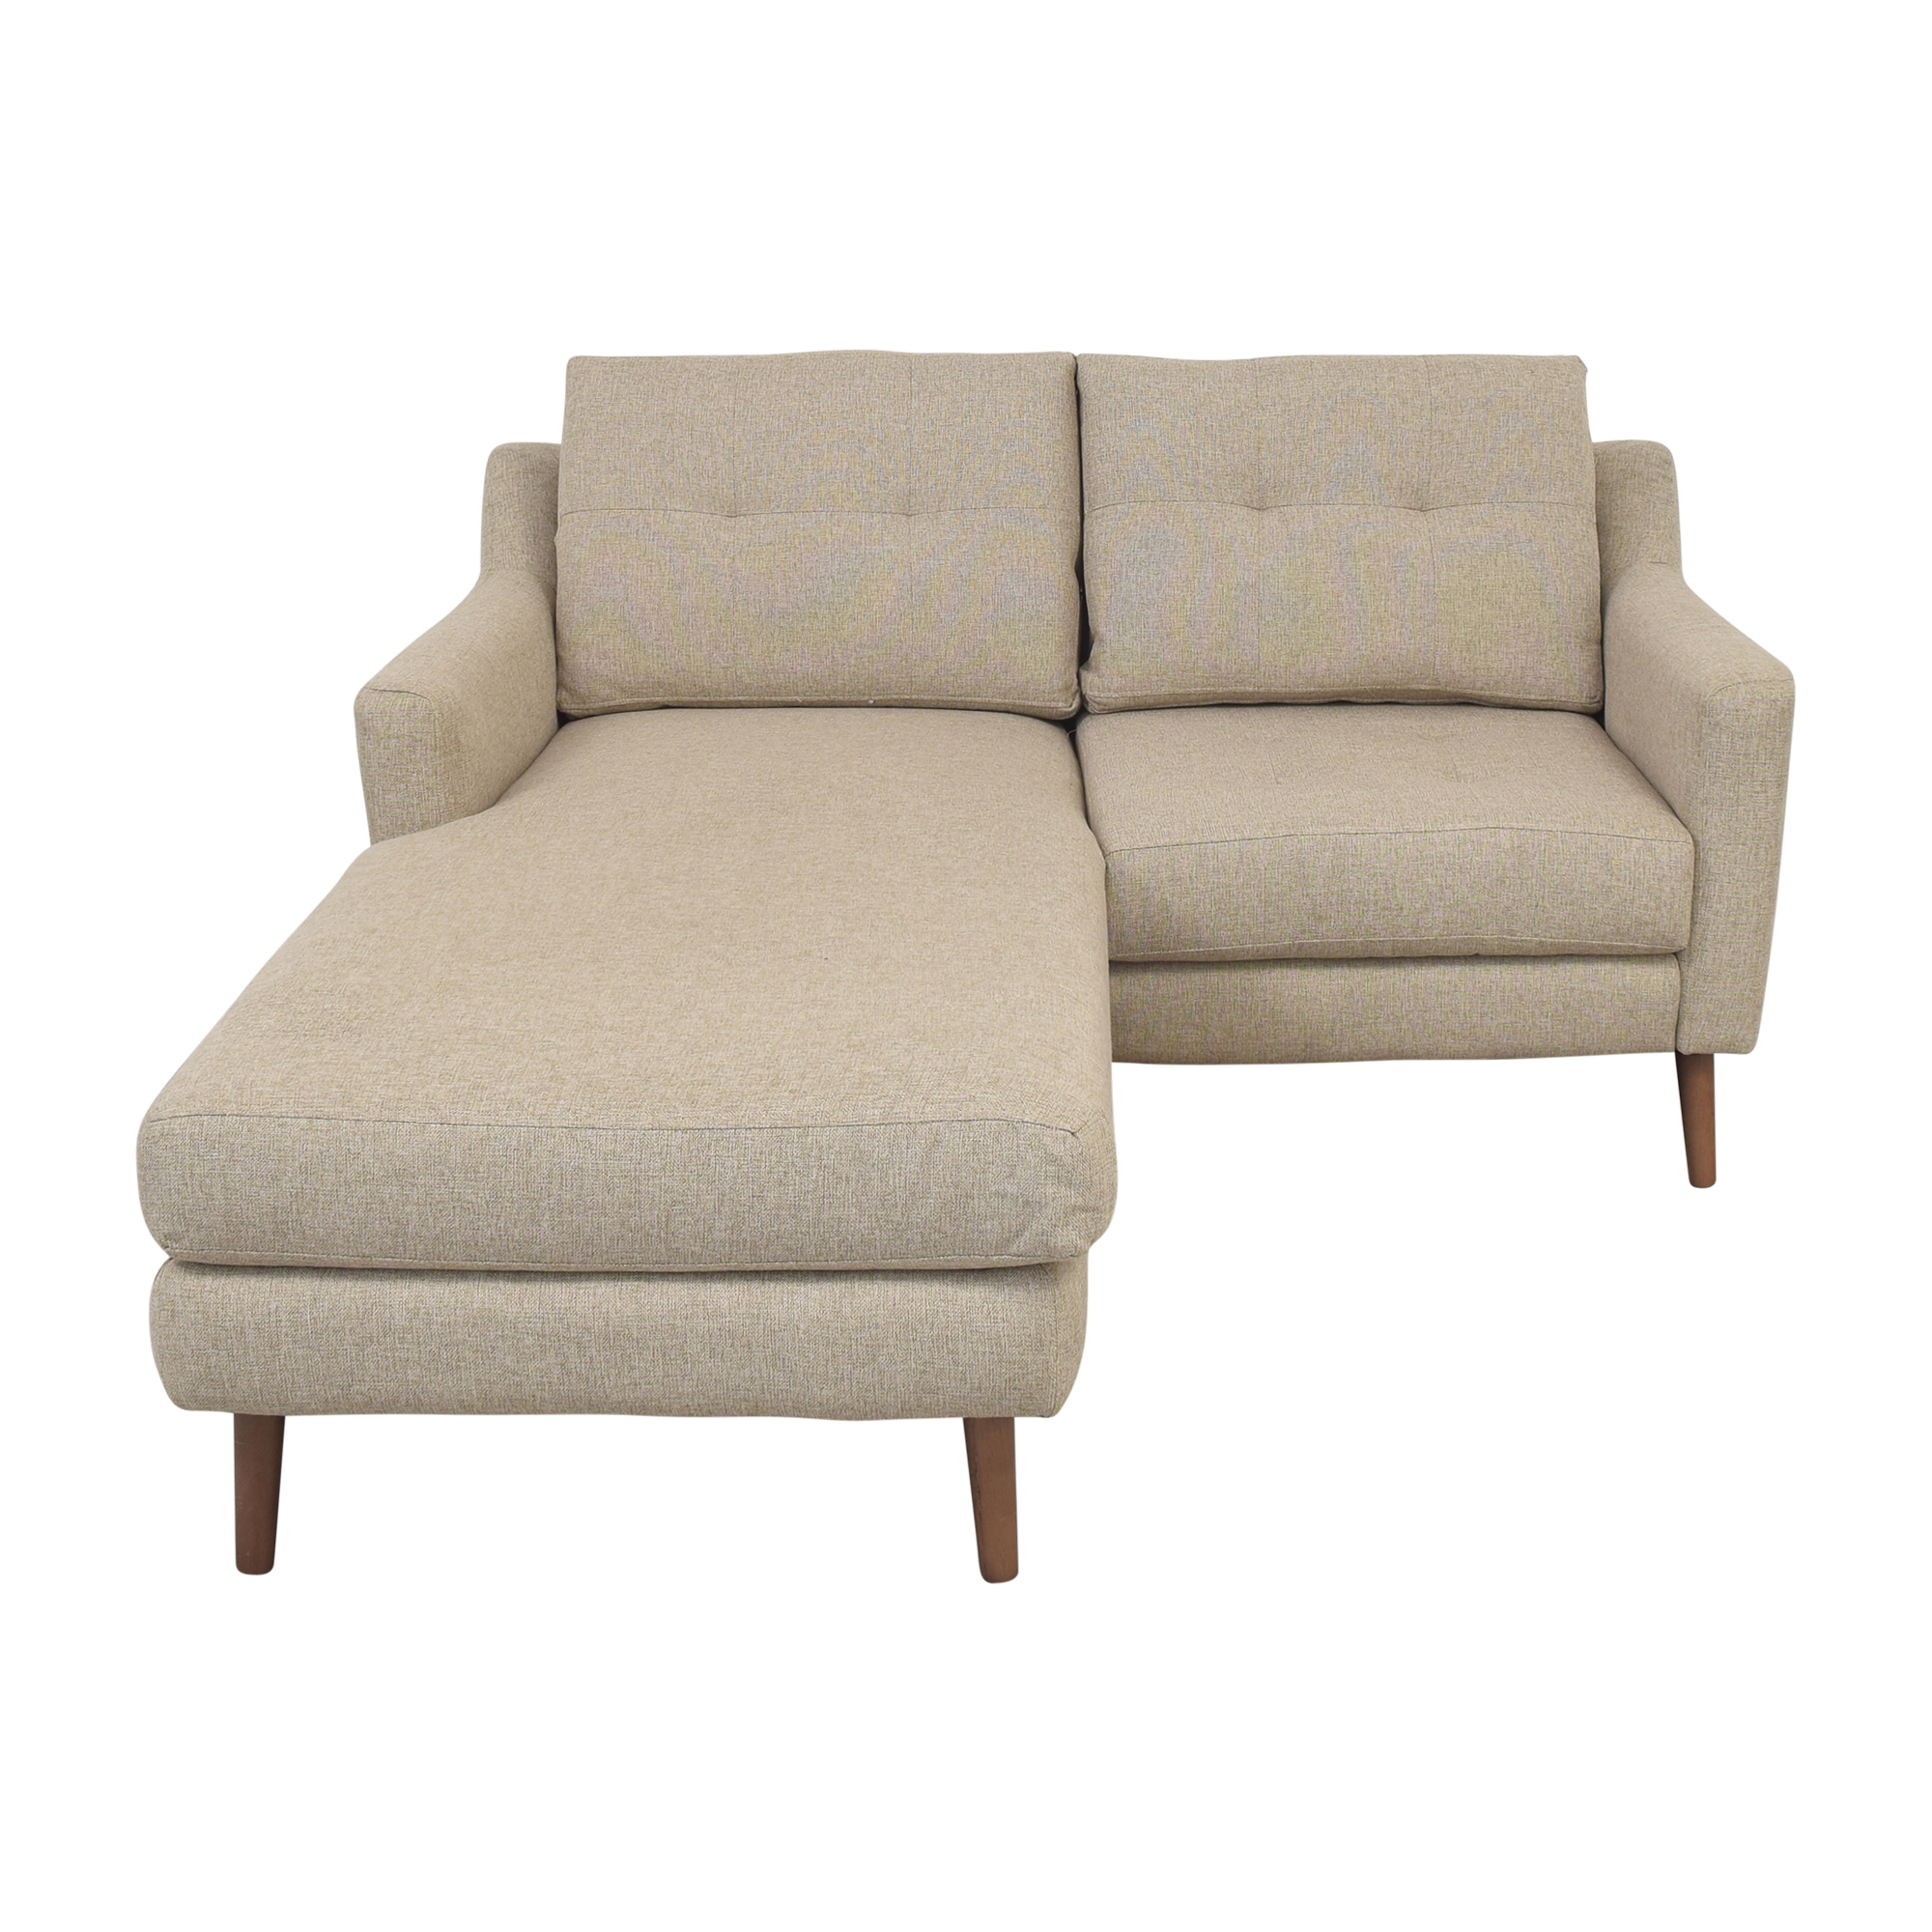 Burrow Burrown Slope Nomad Loveseat with Chaise pa